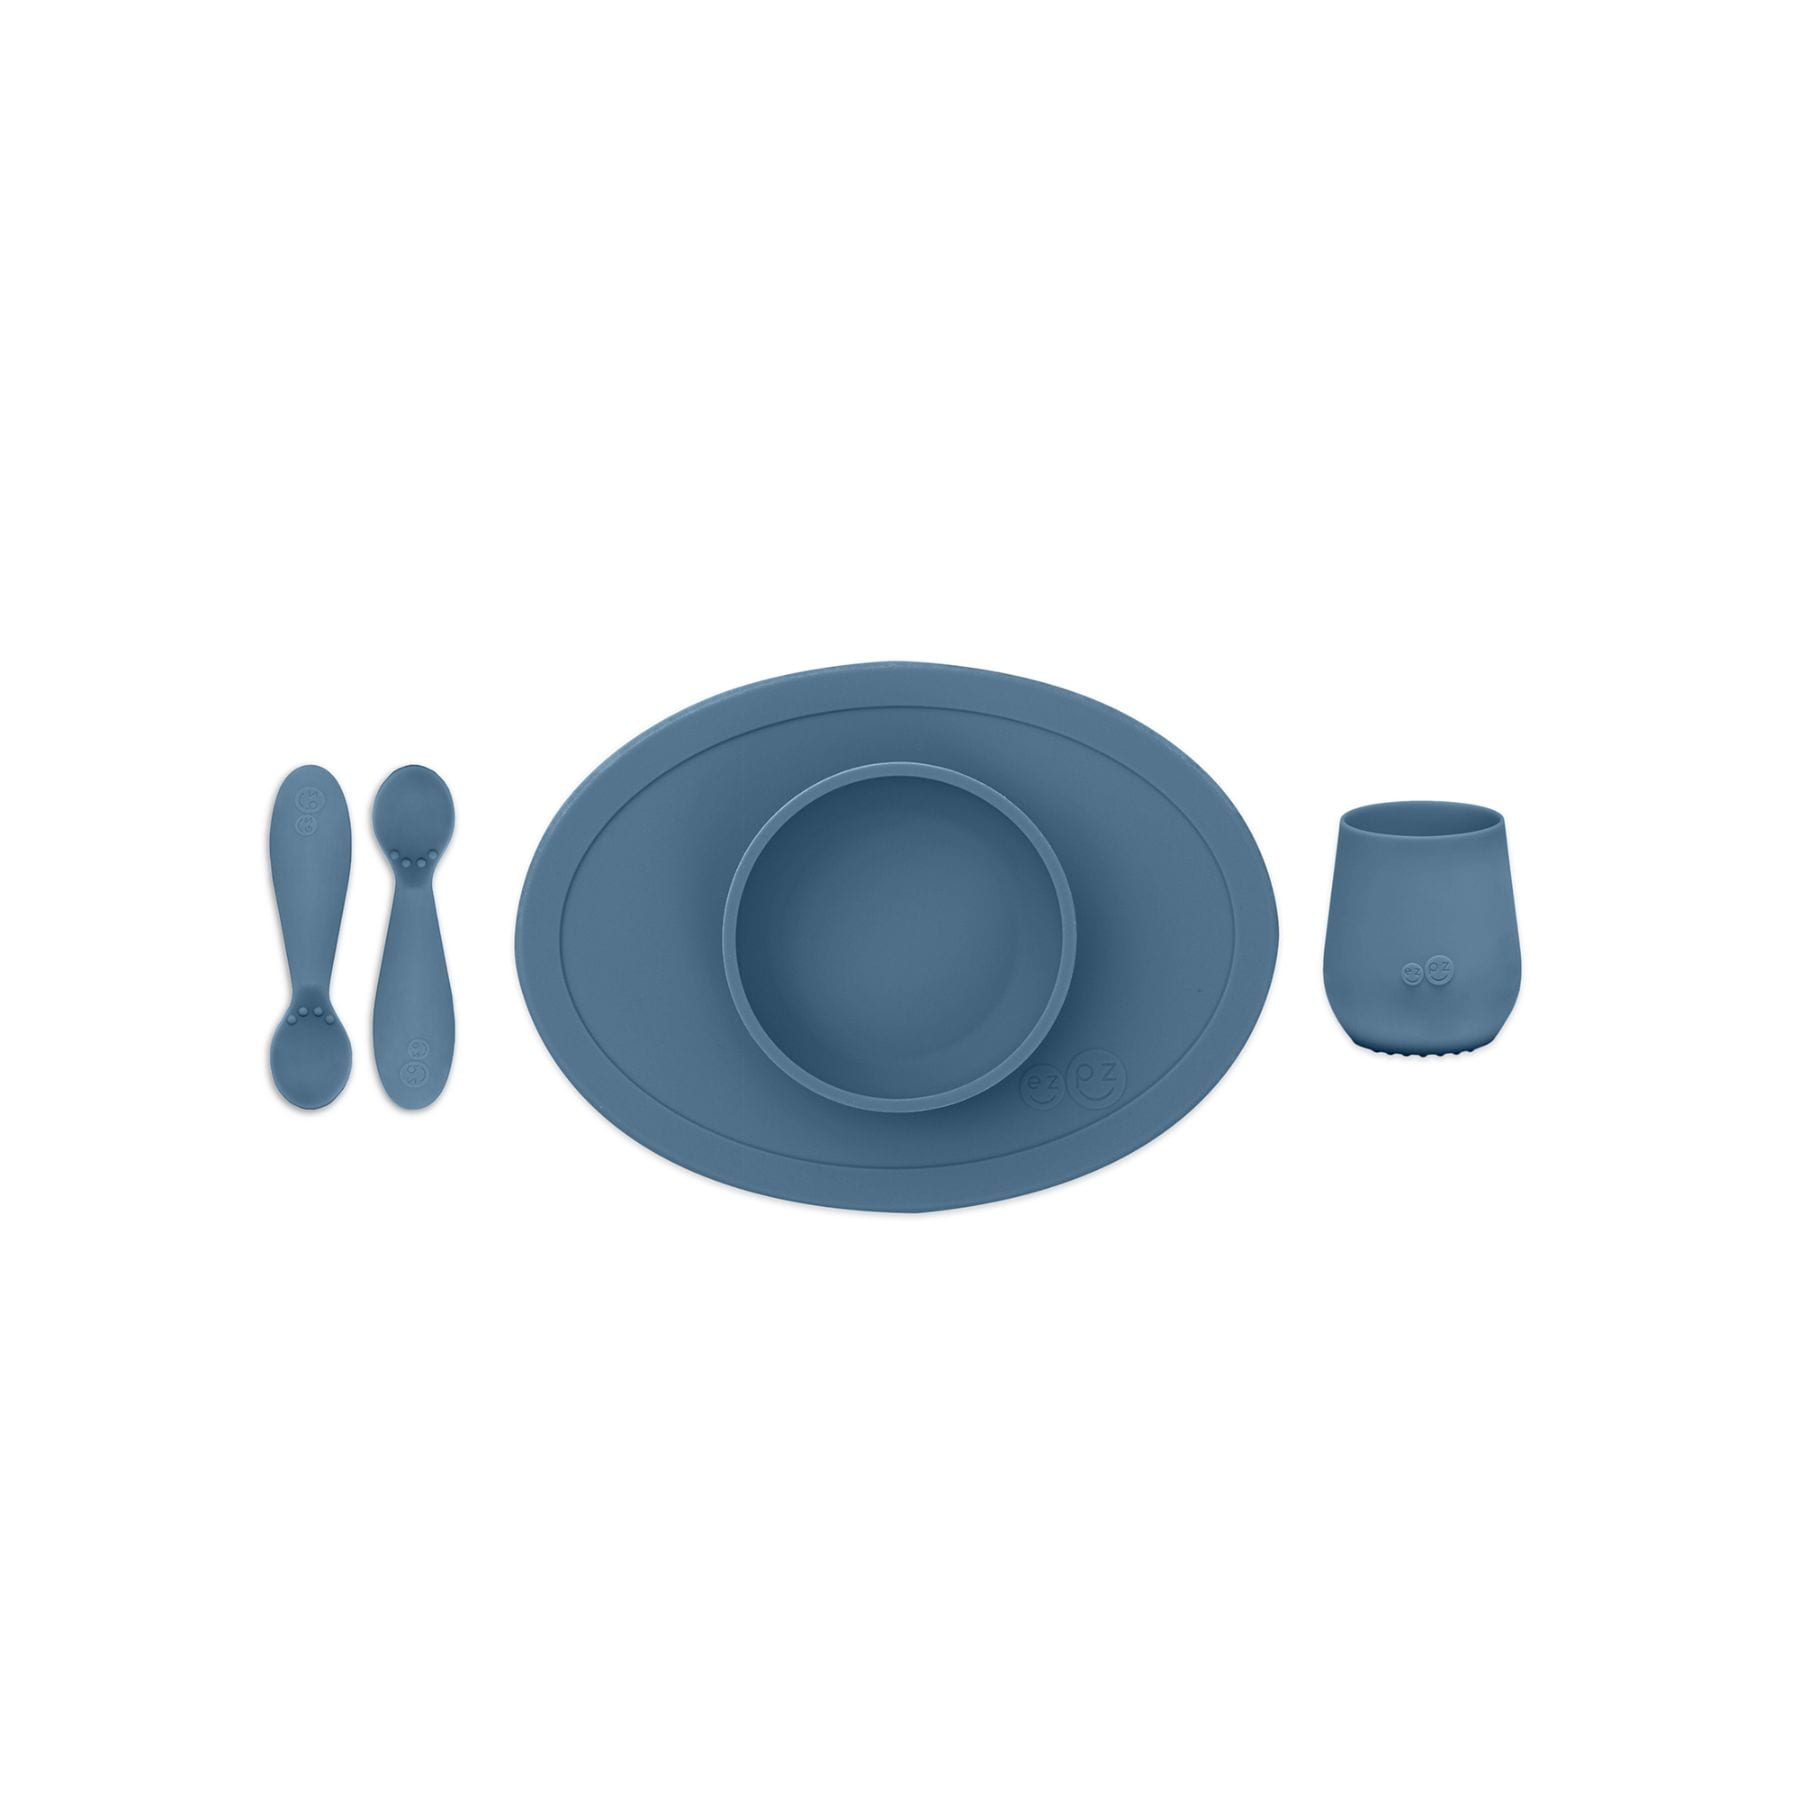 EZPZ Tiny First Food Set - Indigo